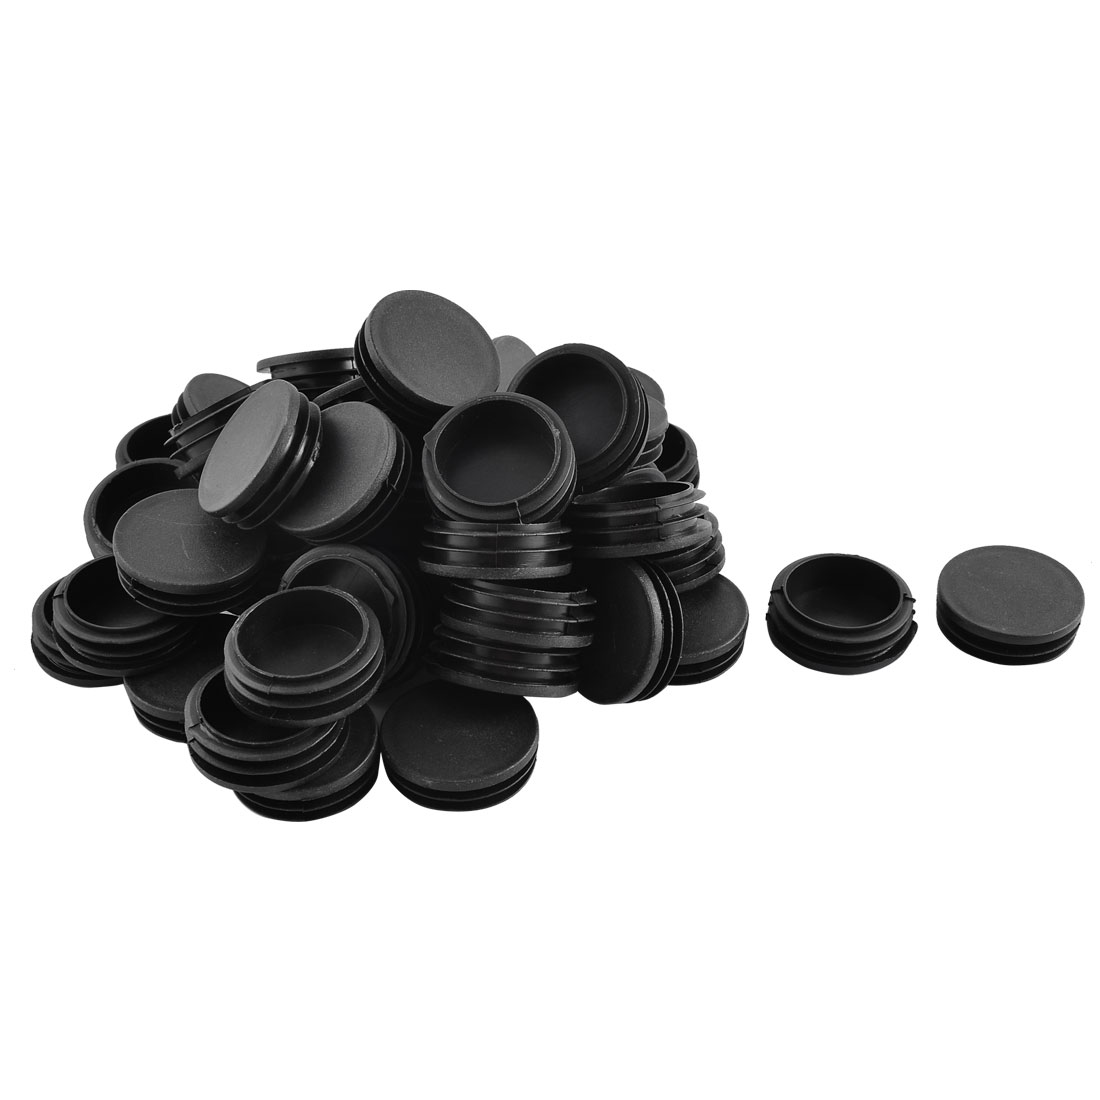 Home Office Plastic Round Shaped Furniture Table Chair Leg Feet Tube Insert Black 50 Pcs